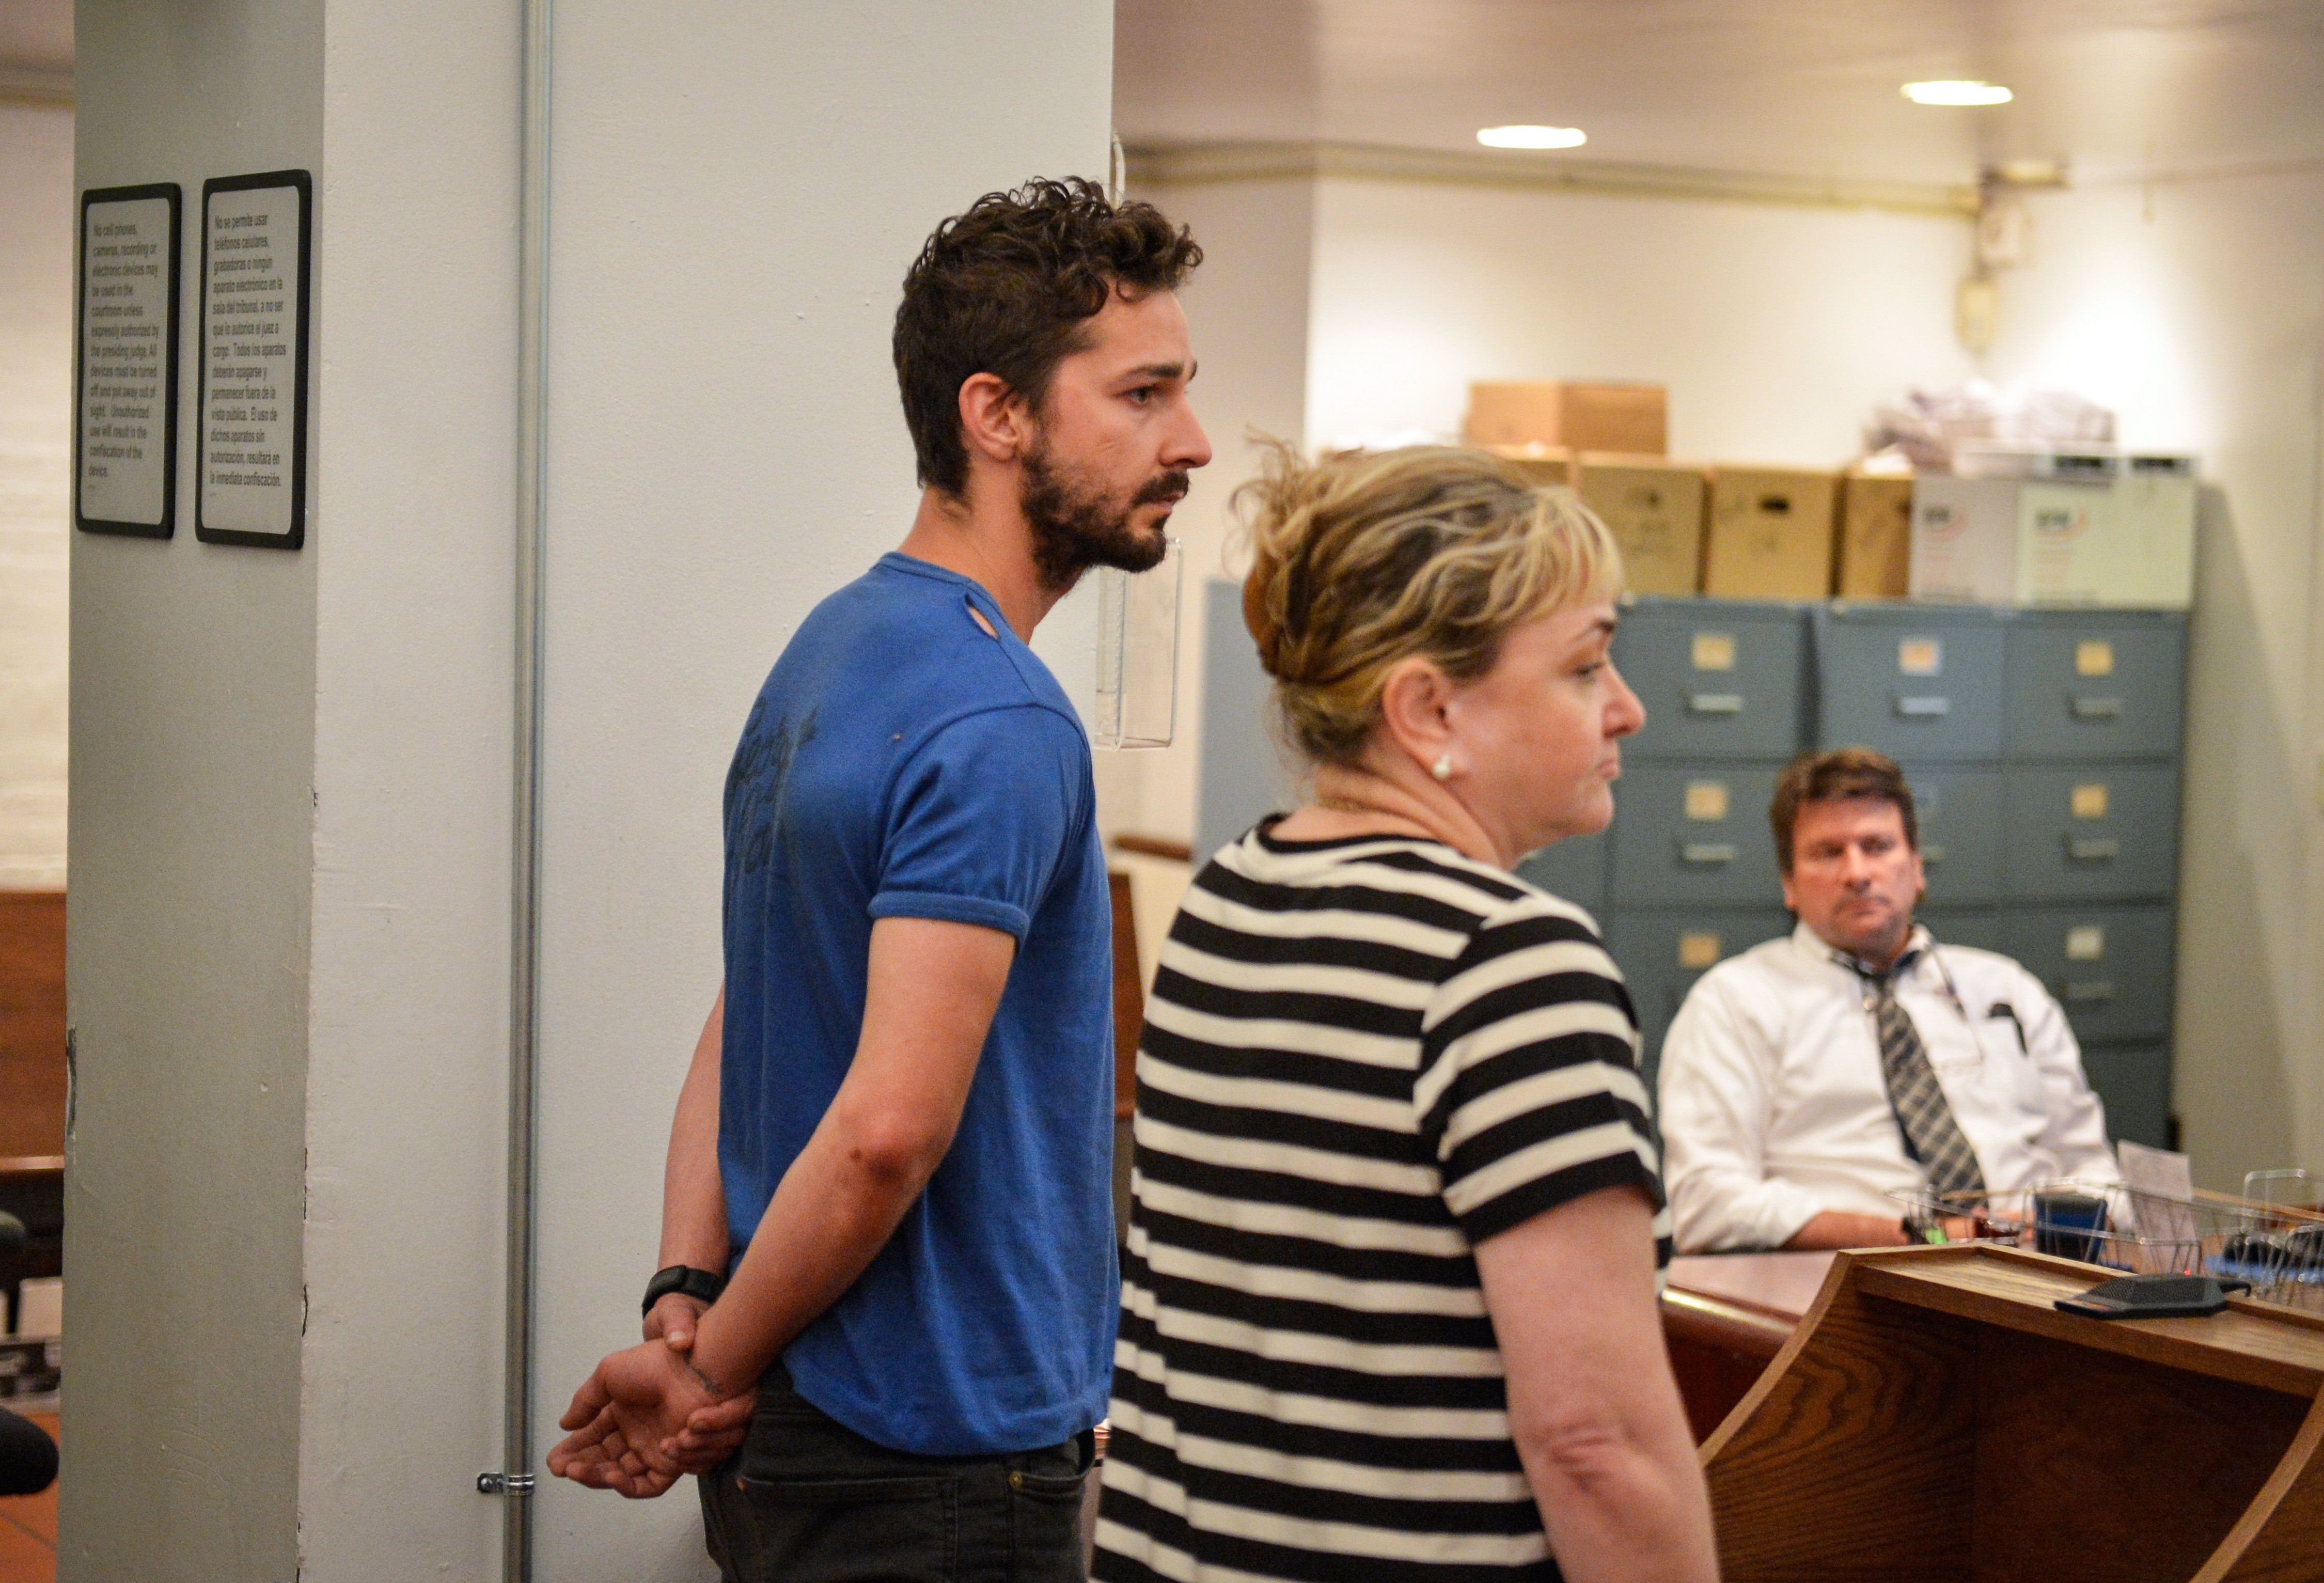 Actor Shia LaBeouf, left, represented by a Legal Aid attorney, is arraigned on disorderly conduct charges in Midtown Community Court in New York on Friday.